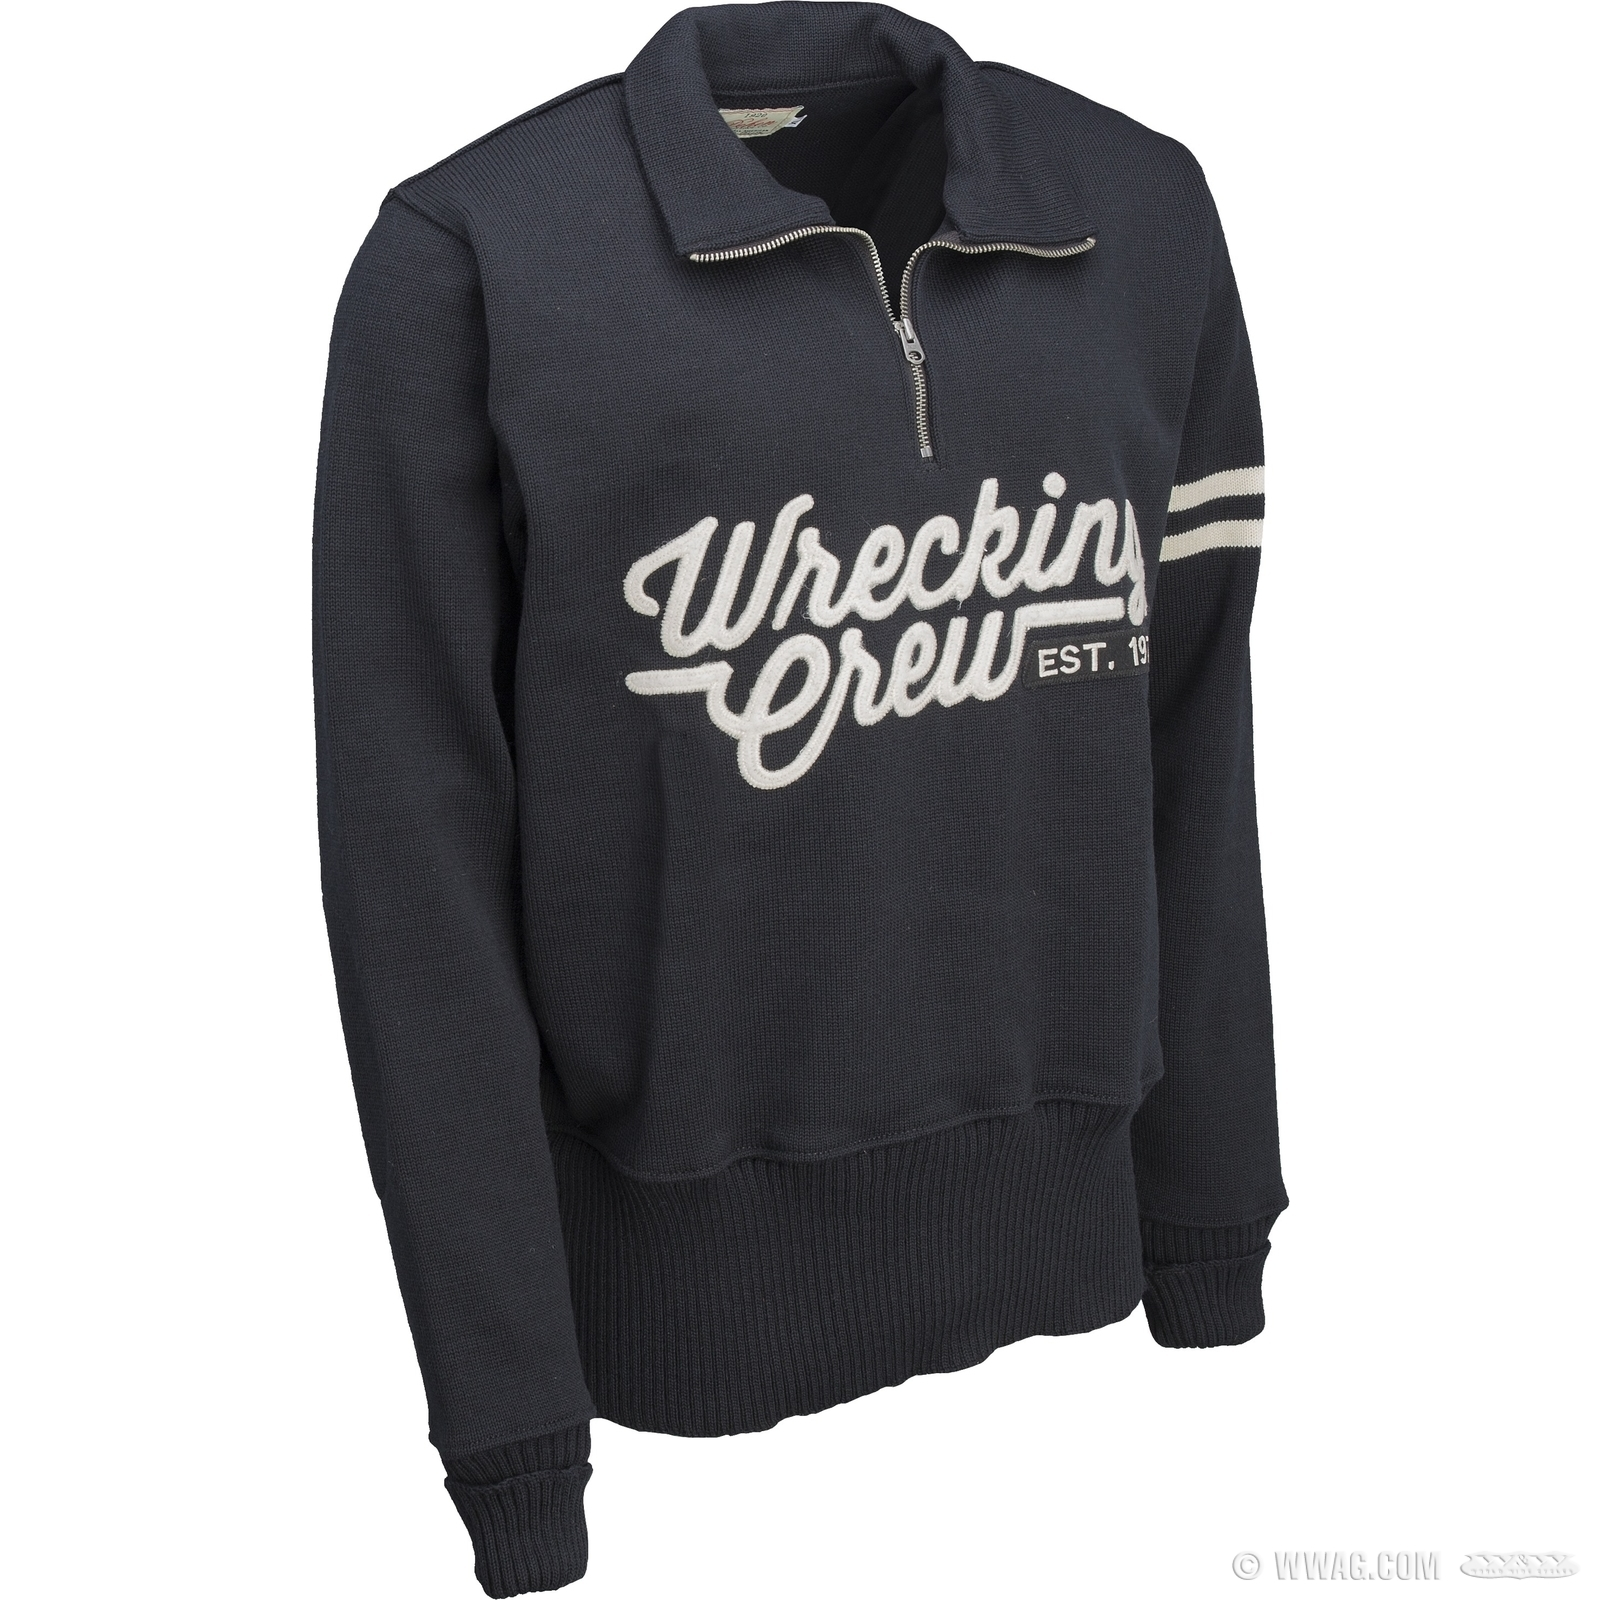 b4d9b0963 W&W Cycles - Apparel and Helmets > Wrecking Crew Sweaters